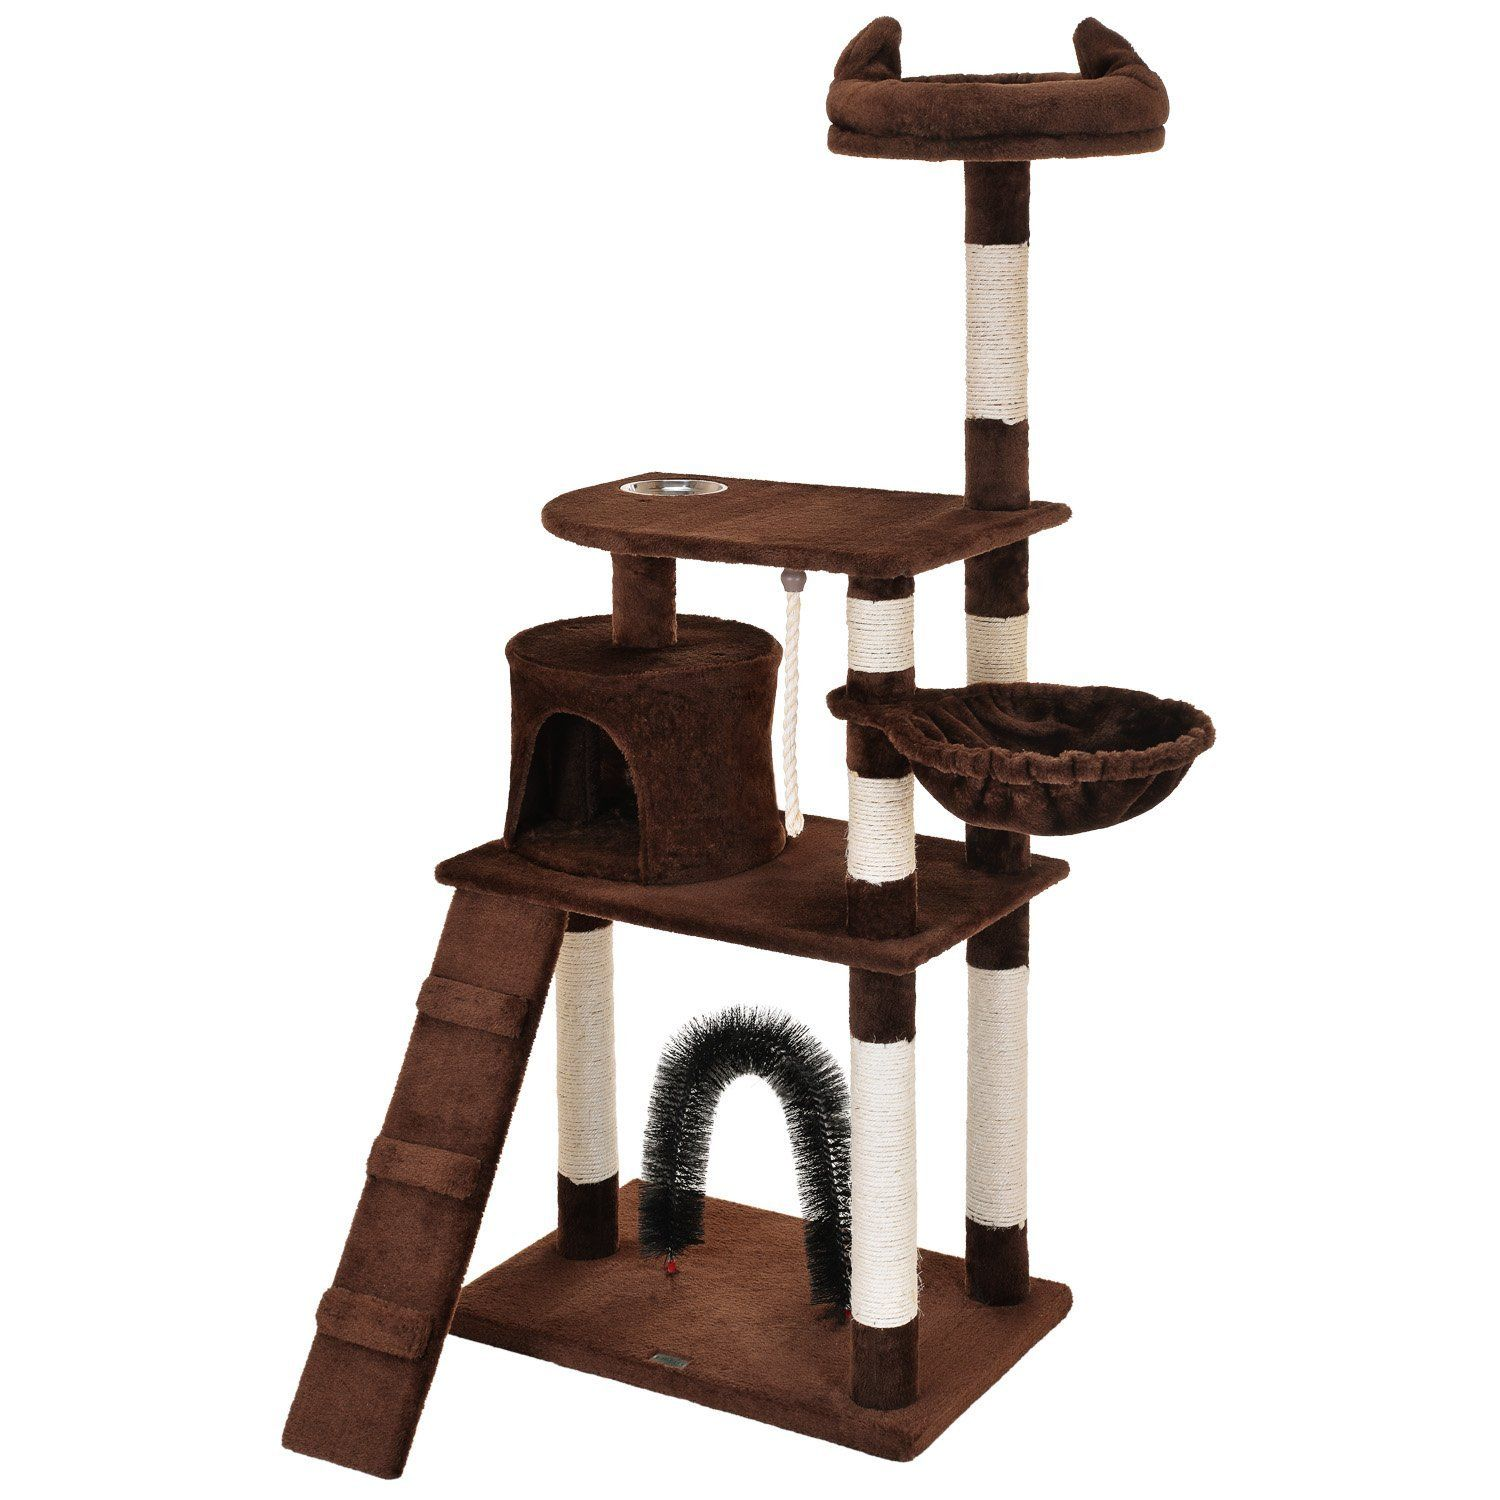 Ollieroo Cat Tree Furniture Tower Climbling Activity Tree Scratcher Play